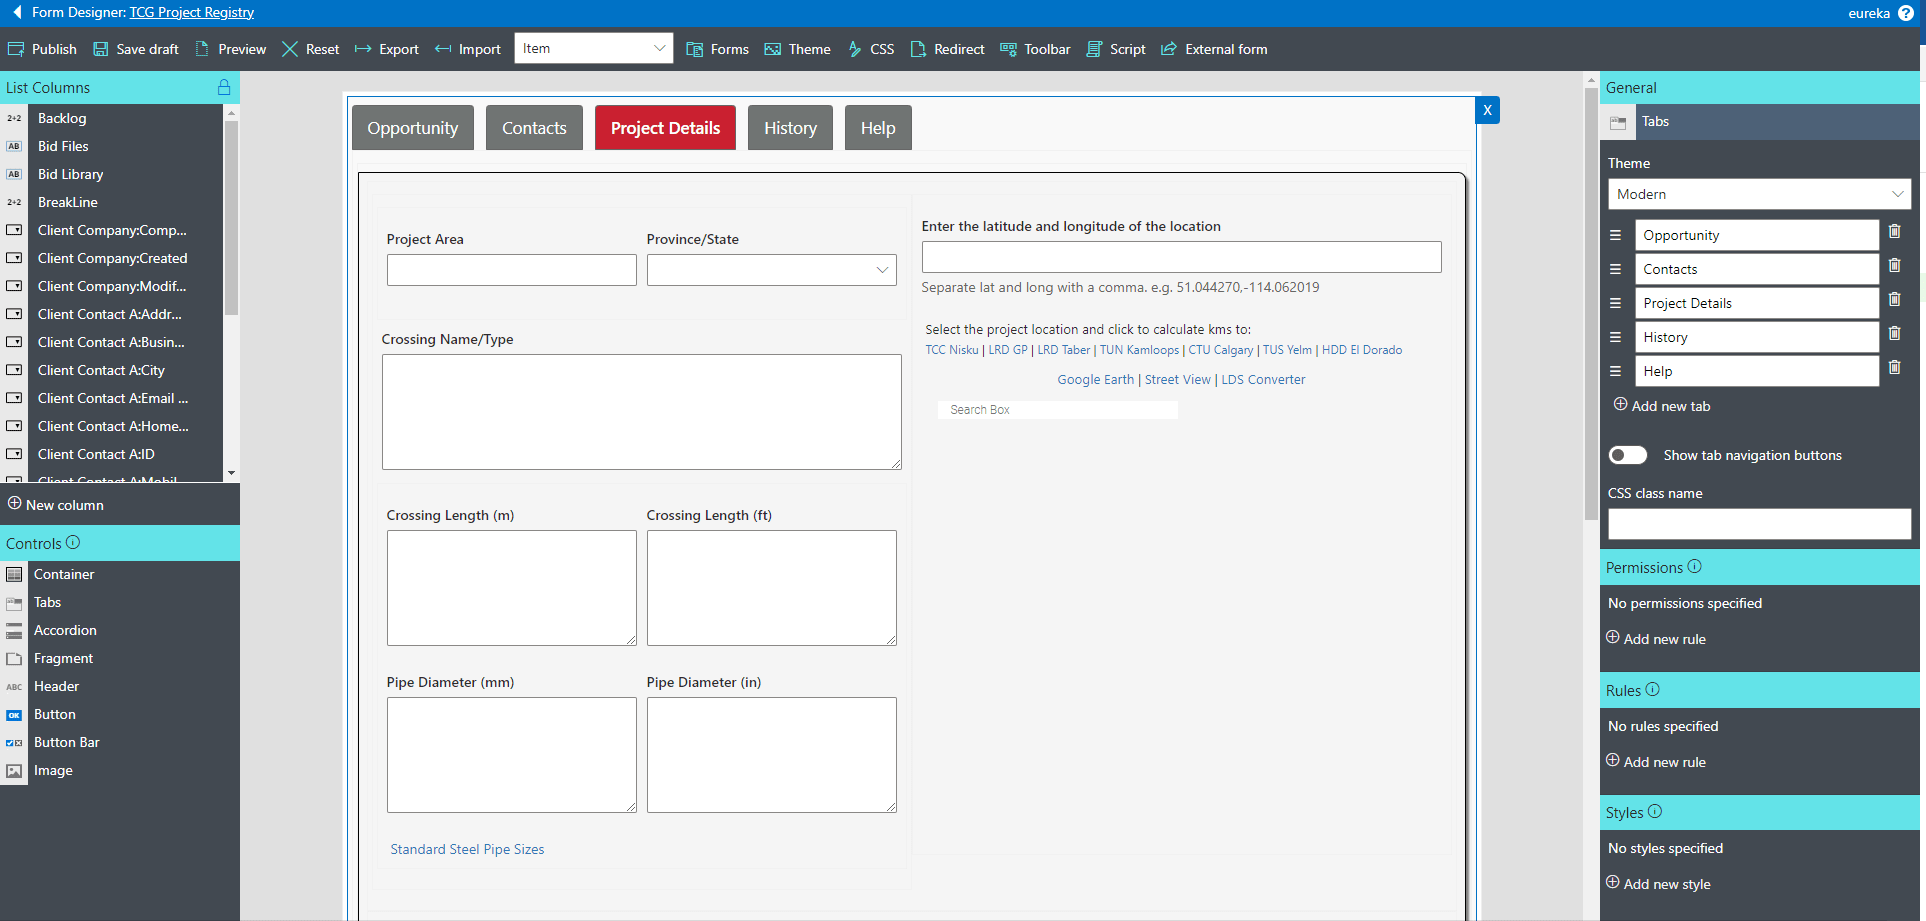 Infowise Form Design Interface